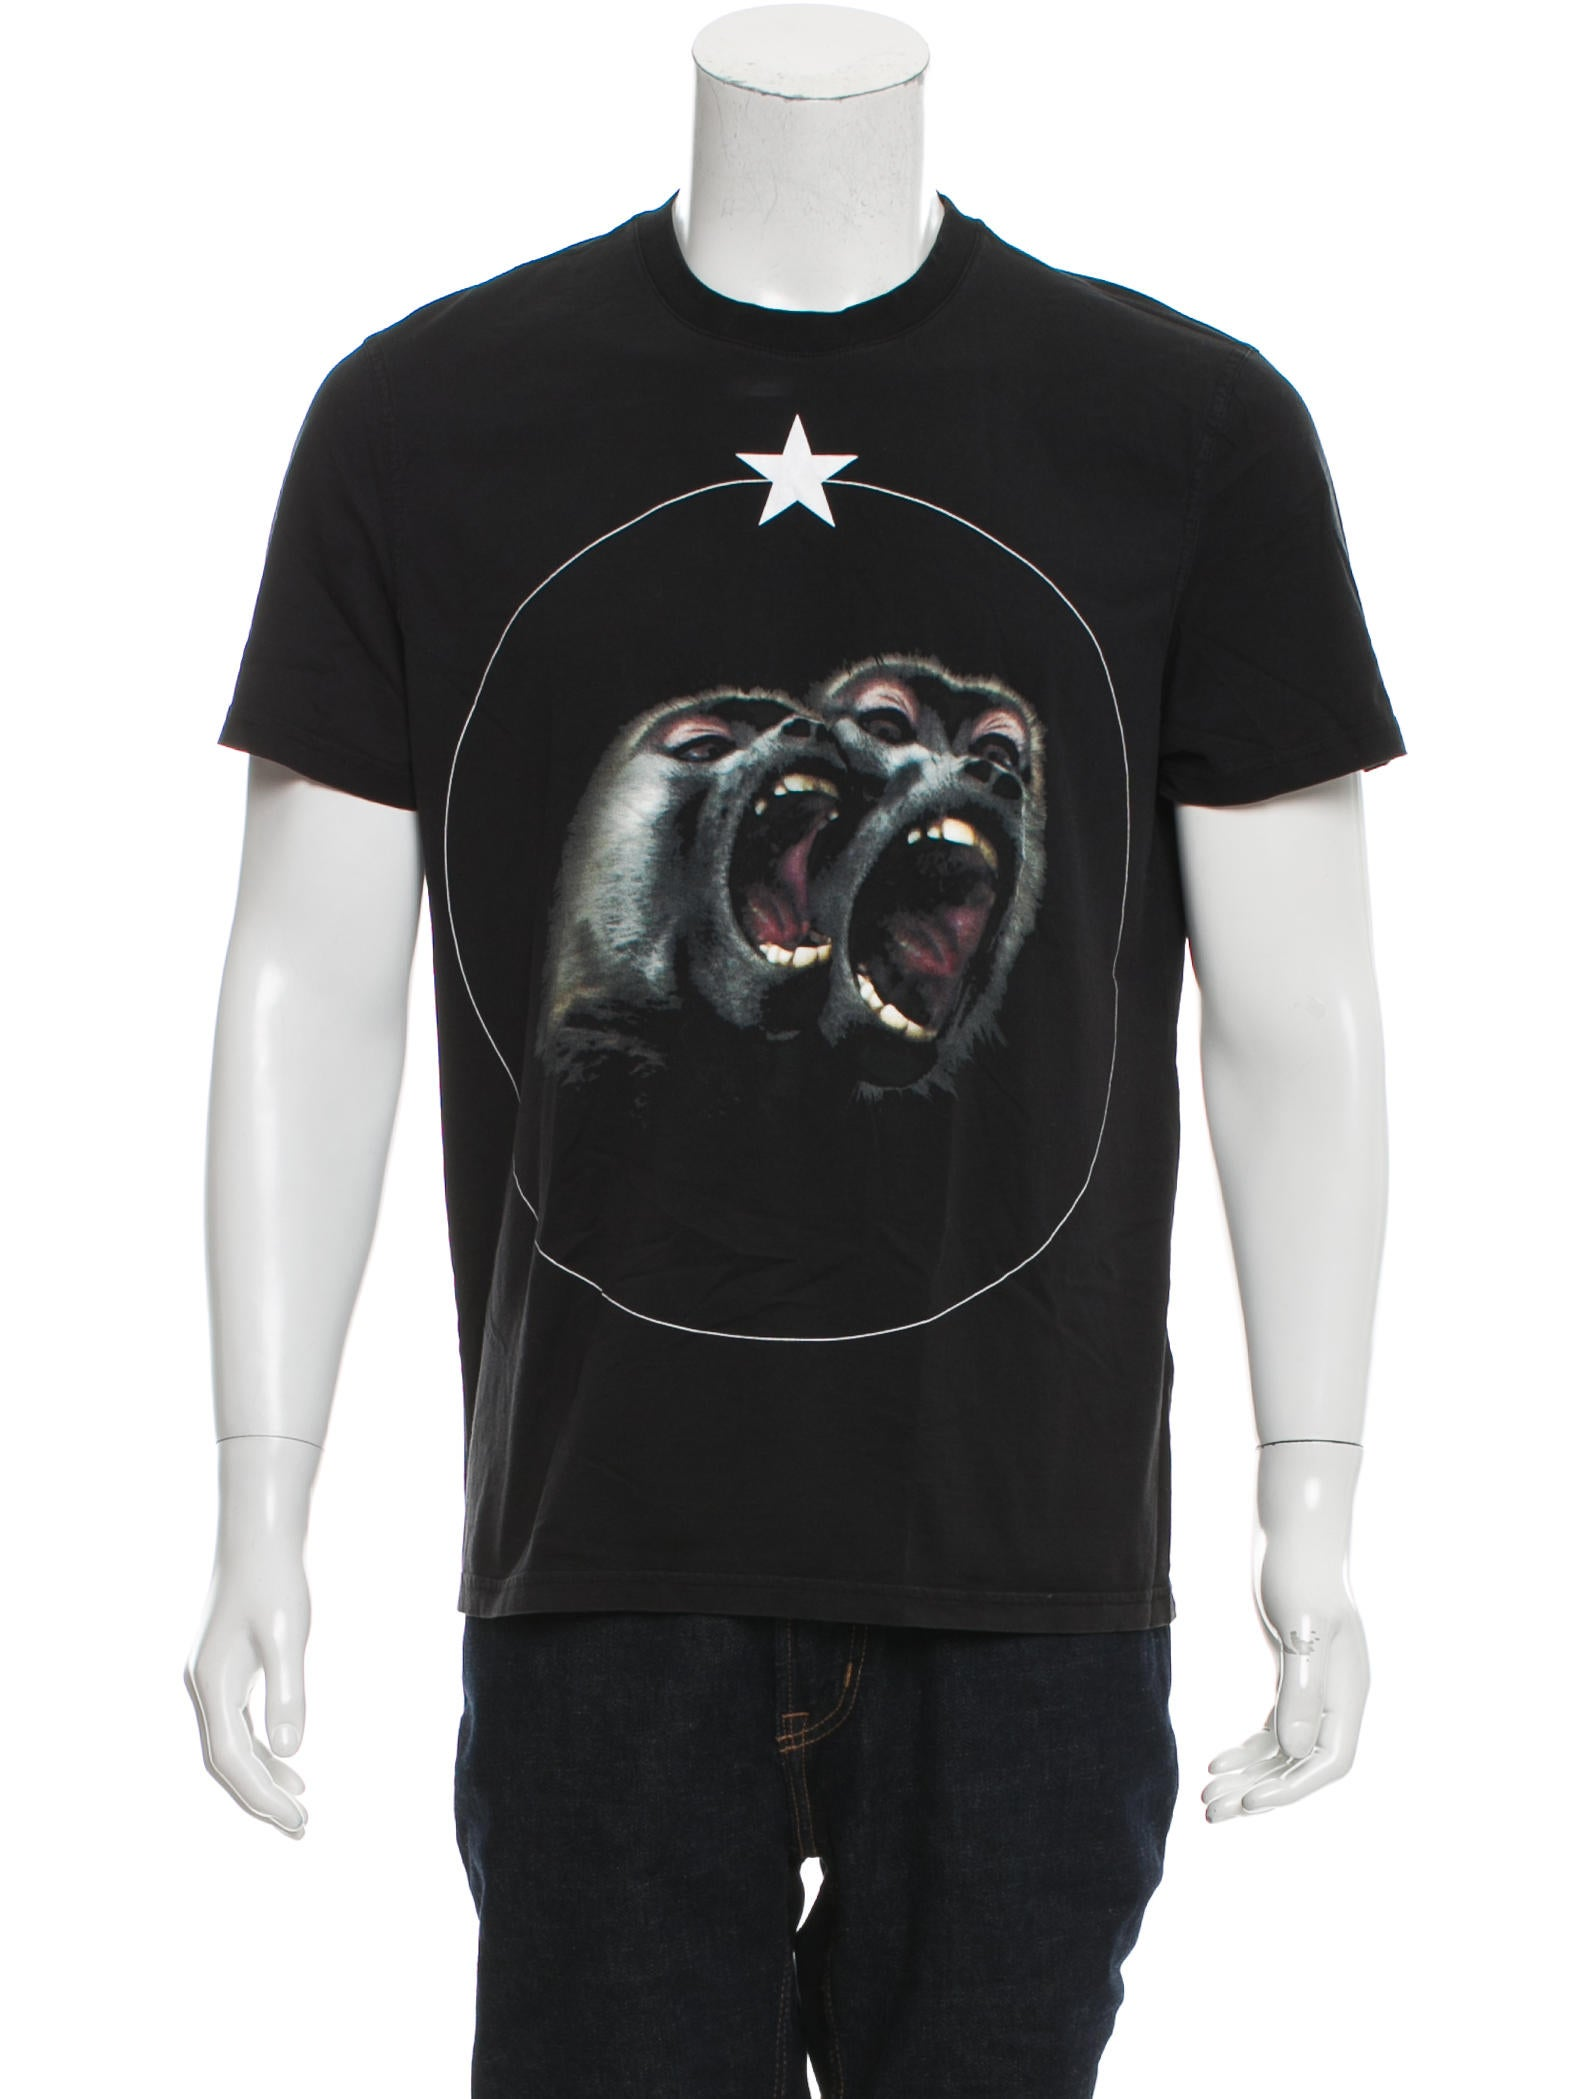 Givenchy 2016 monkey brothers t shirt clothing Givenchy t shirt price